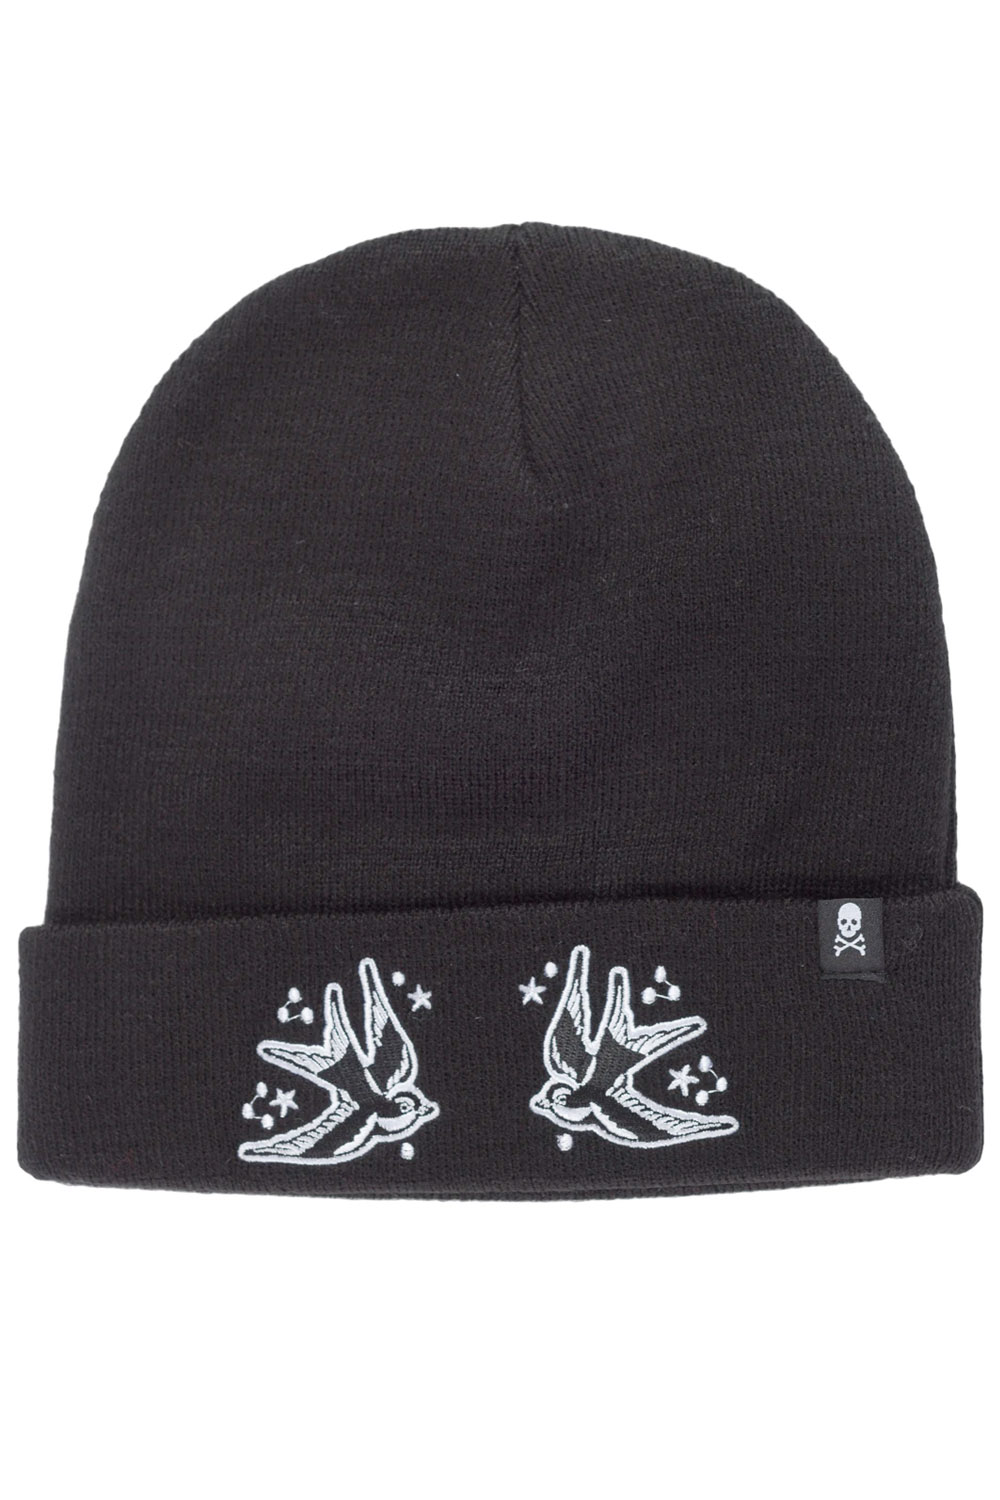 Sourpuss Schwalben Strickmütze Stickerei Rockabilly Tattoo Beanie Mütze